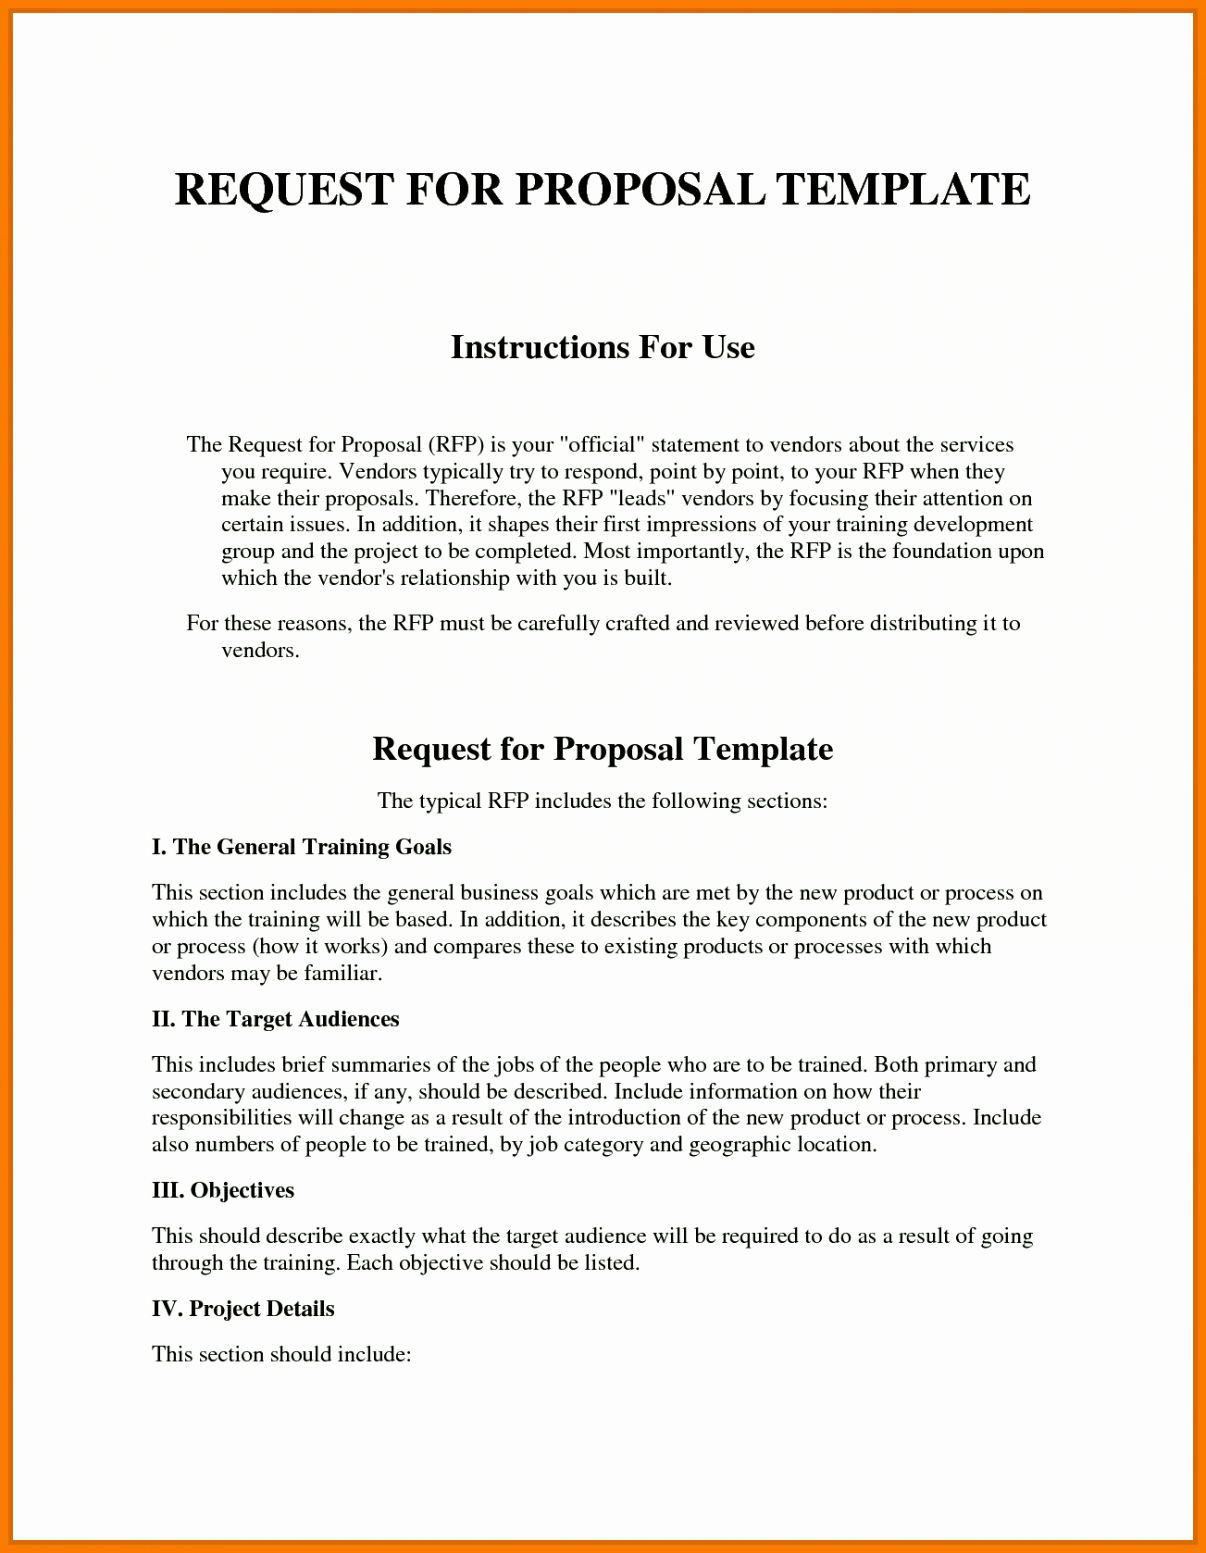 003 Remarkable Request For Proposal Rfp Template Construction Inspiration Full